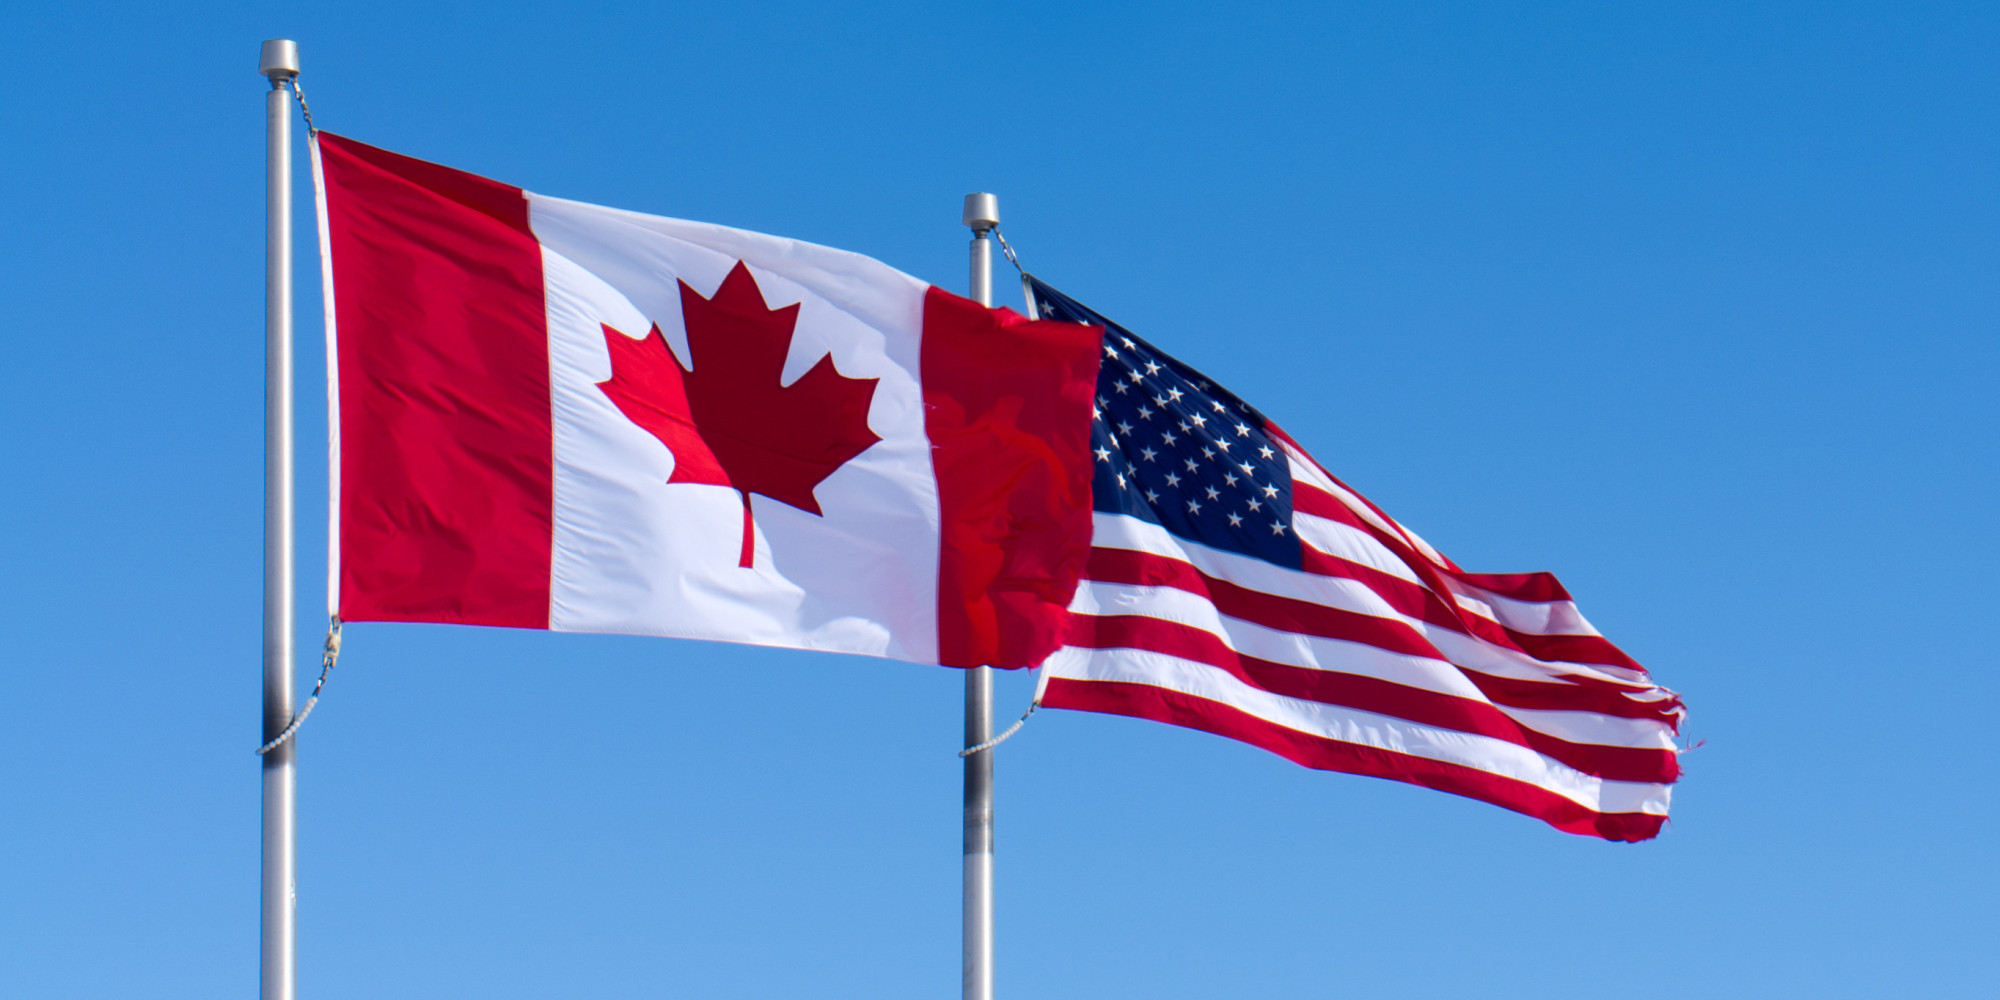 o-CANADA-UNITED-STATES-FLAGS-facebook.jpg